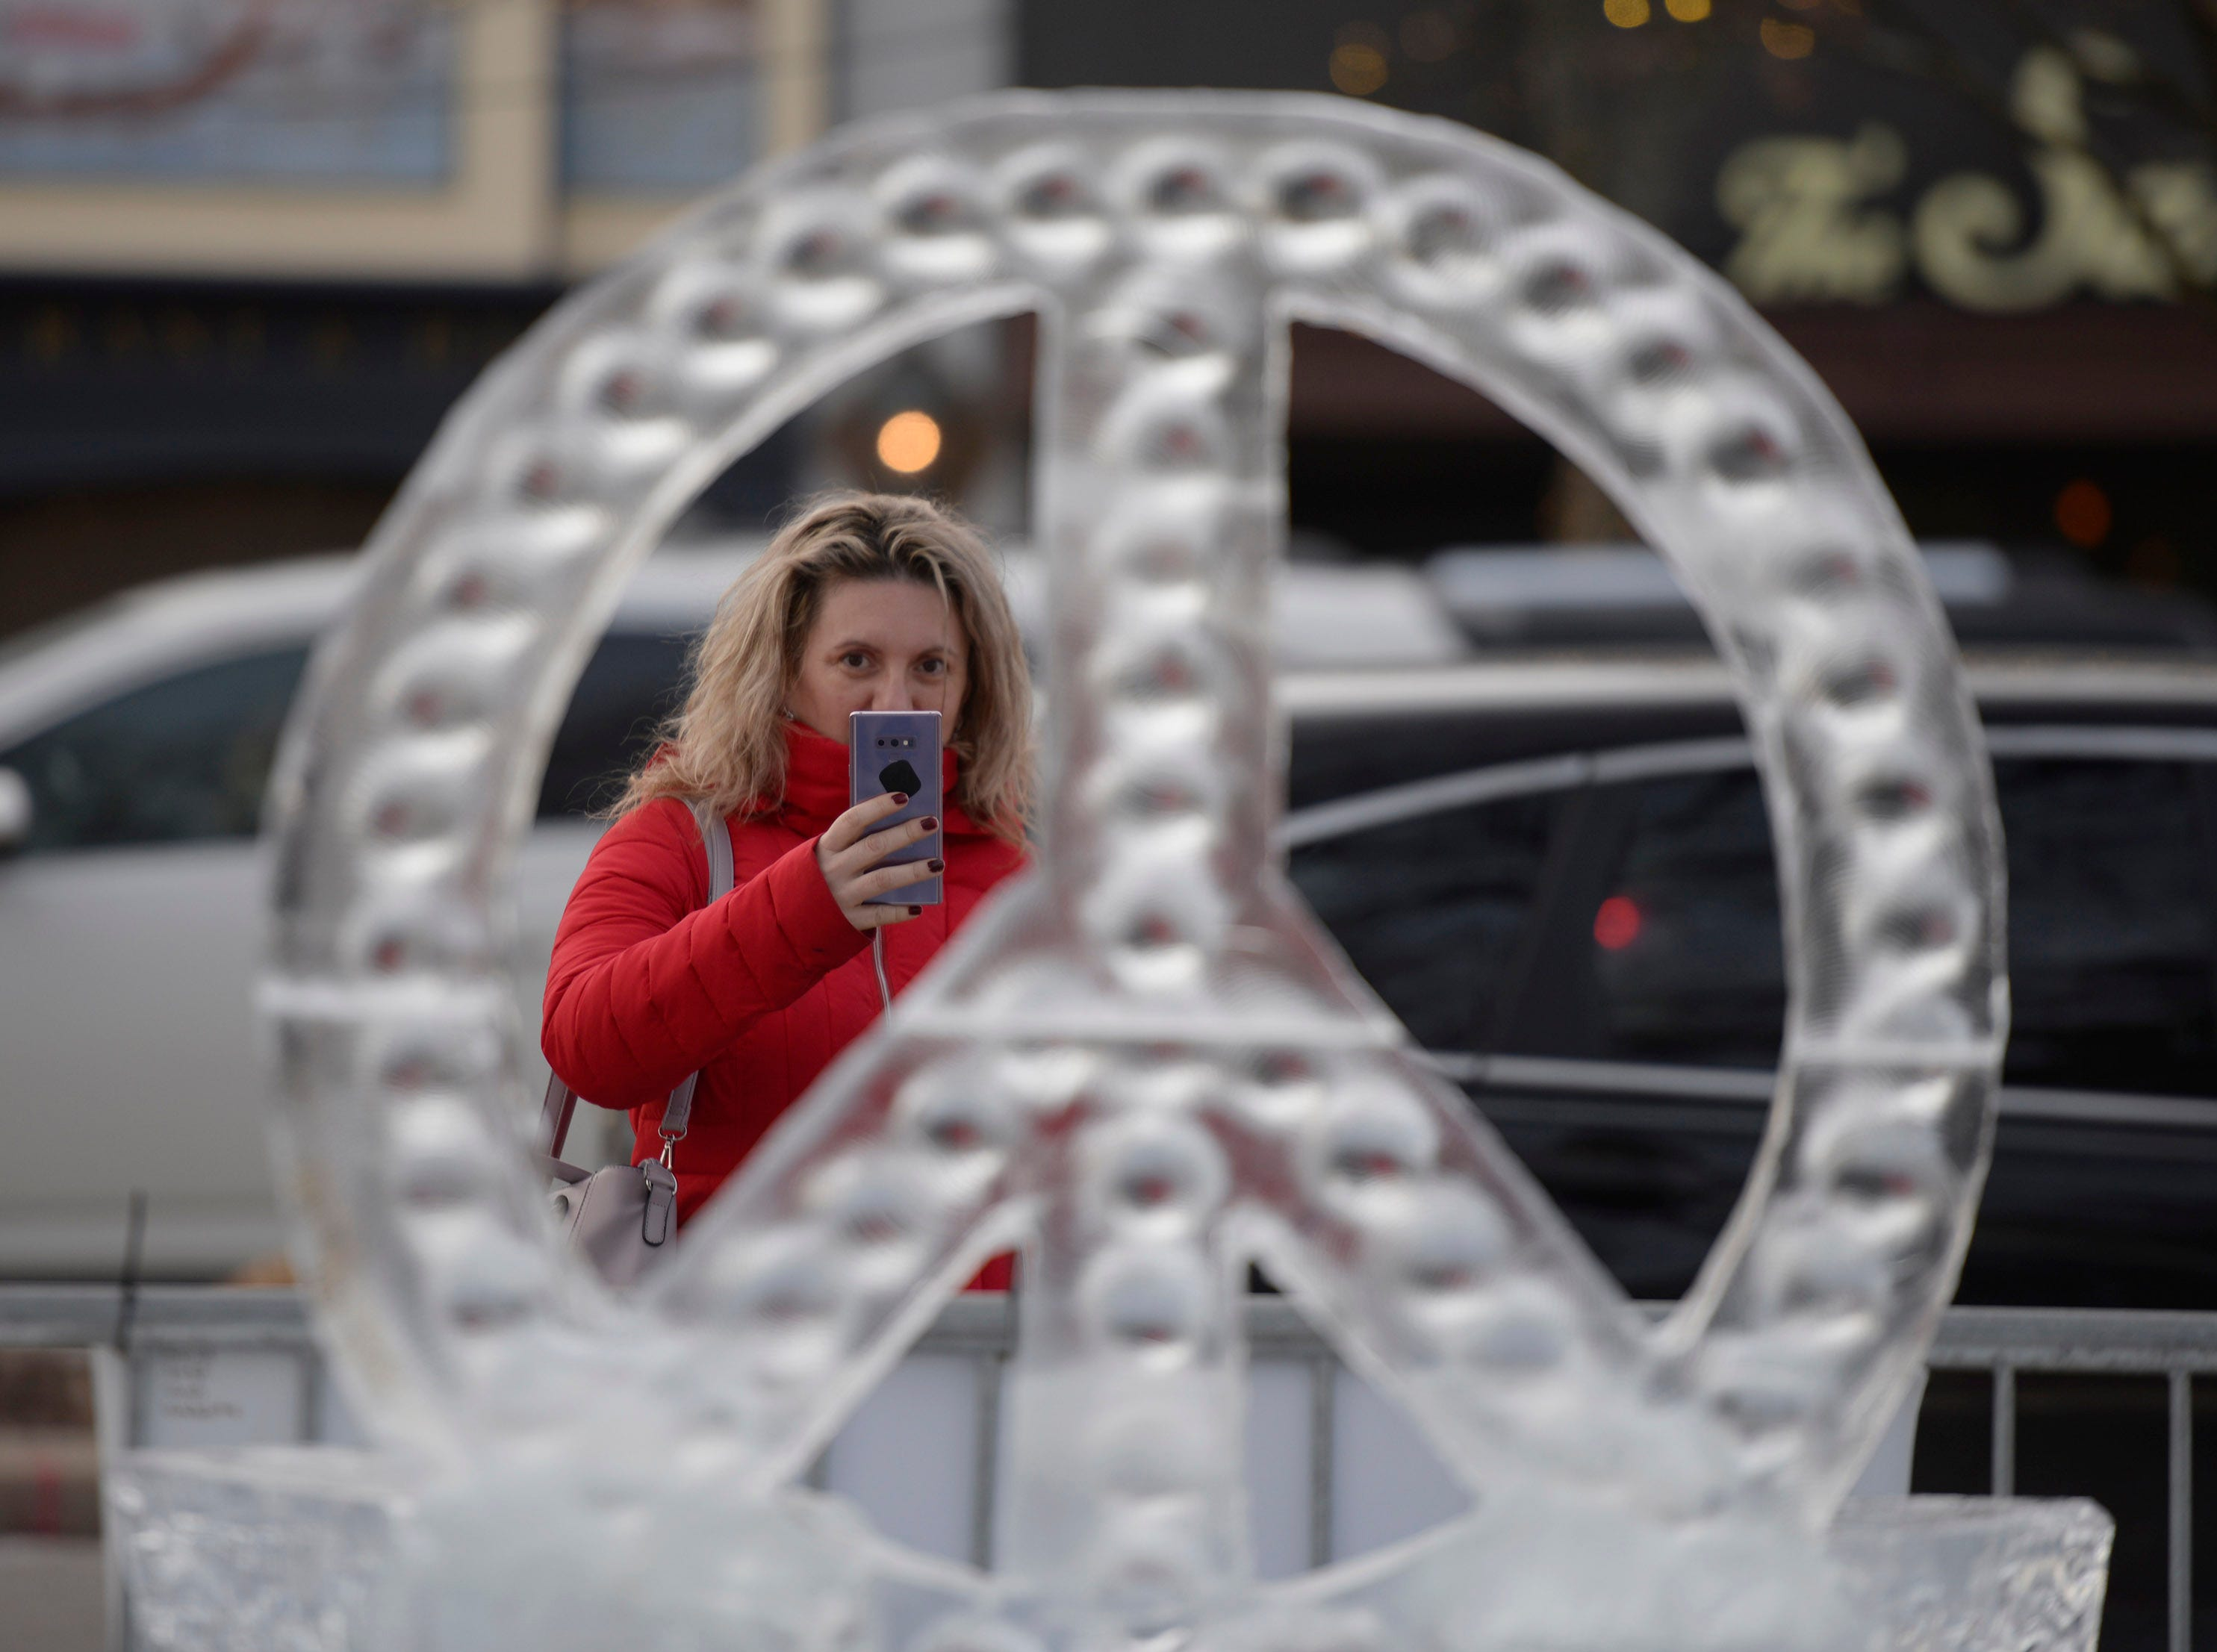 Joanna Nicoara takes a photo with her phone of one of the more than 100 ice sculptures in Kellogg Park in downtown Plymouth.